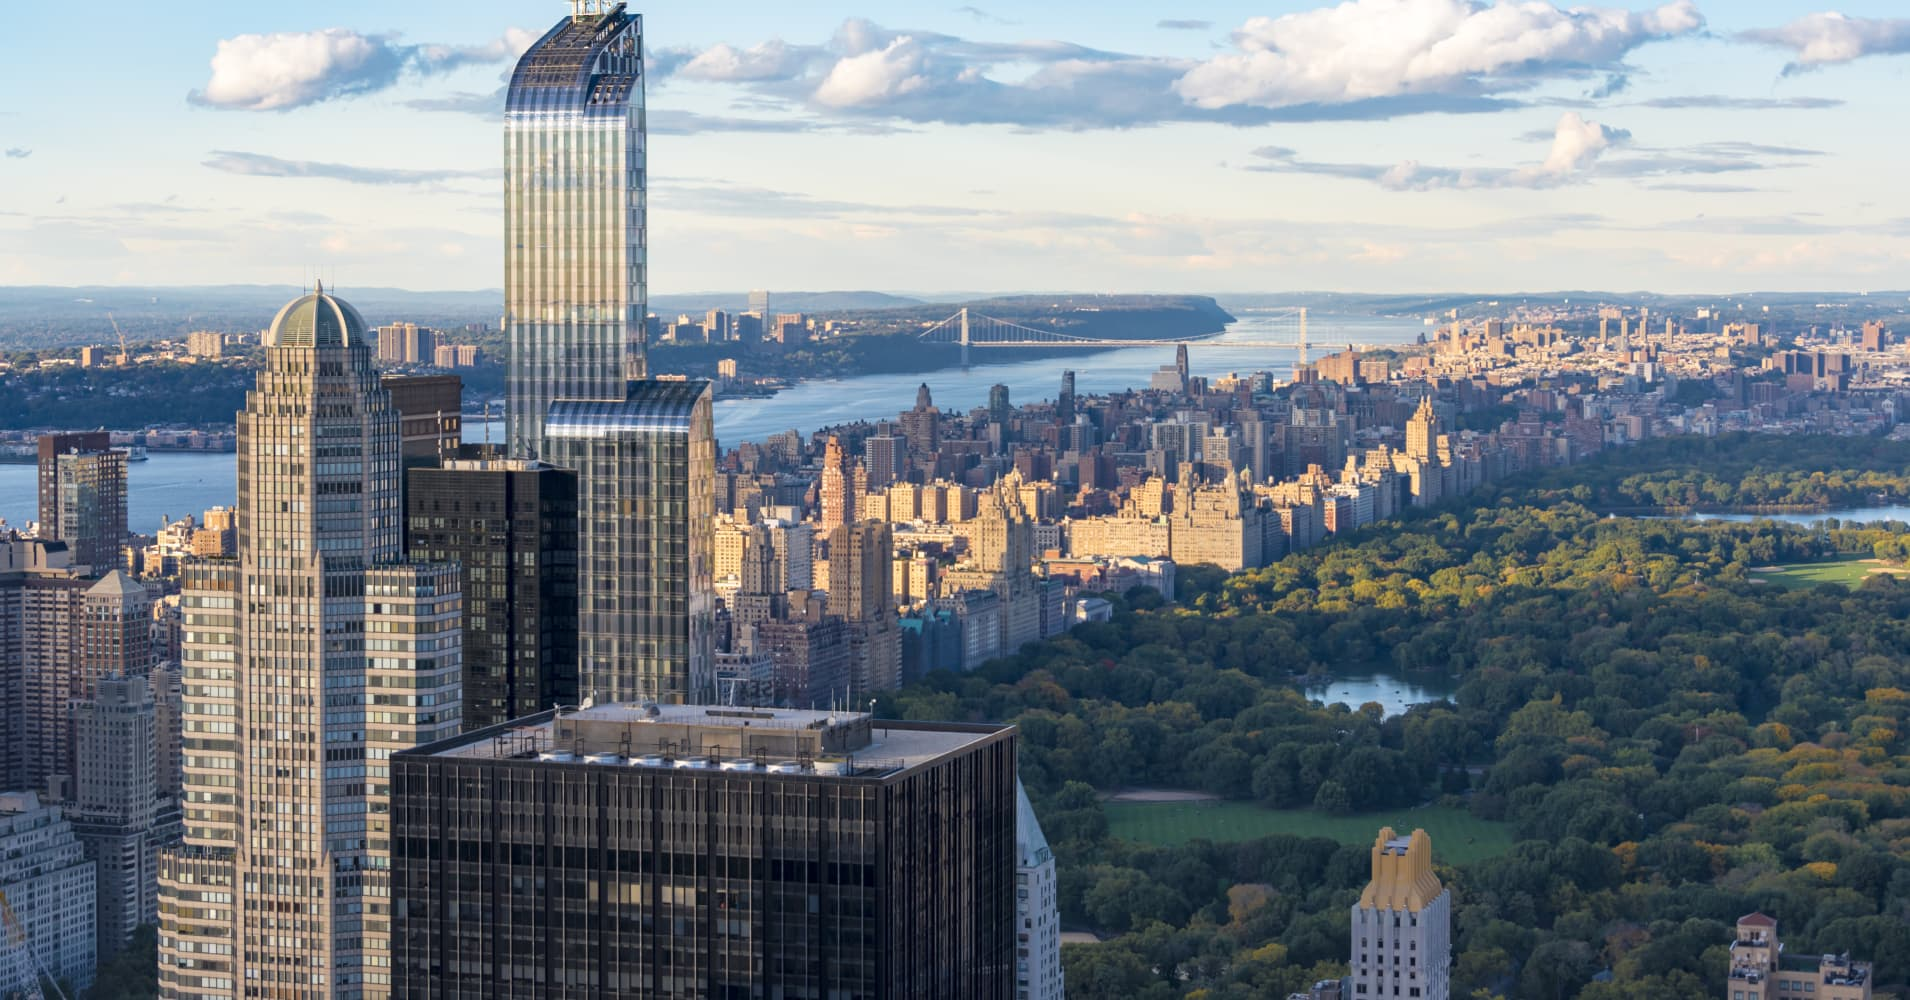 Nyc total property value surges over 1 trillion setting a record solutioingenieria Choice Image